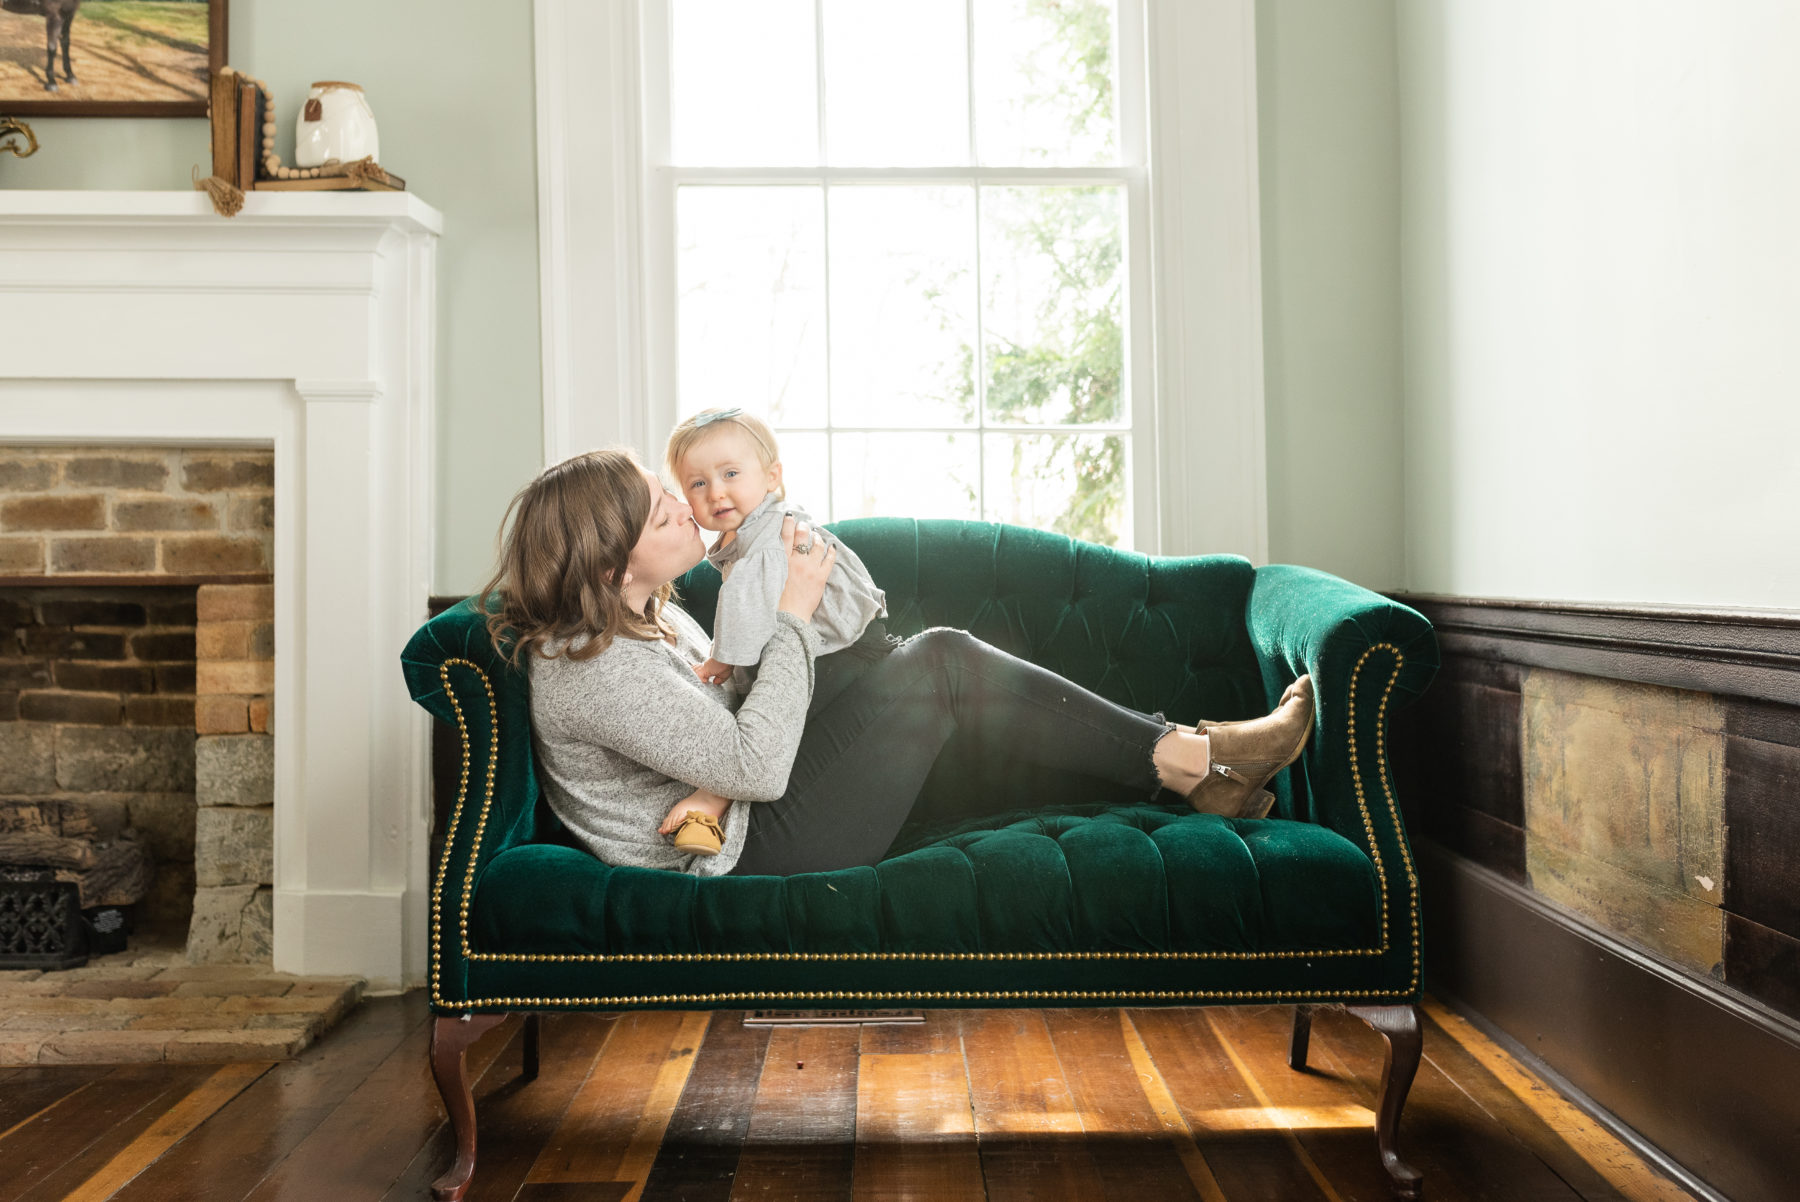 Dolly Delong Family Photo Inspiration featured on Nashville Baby Guide